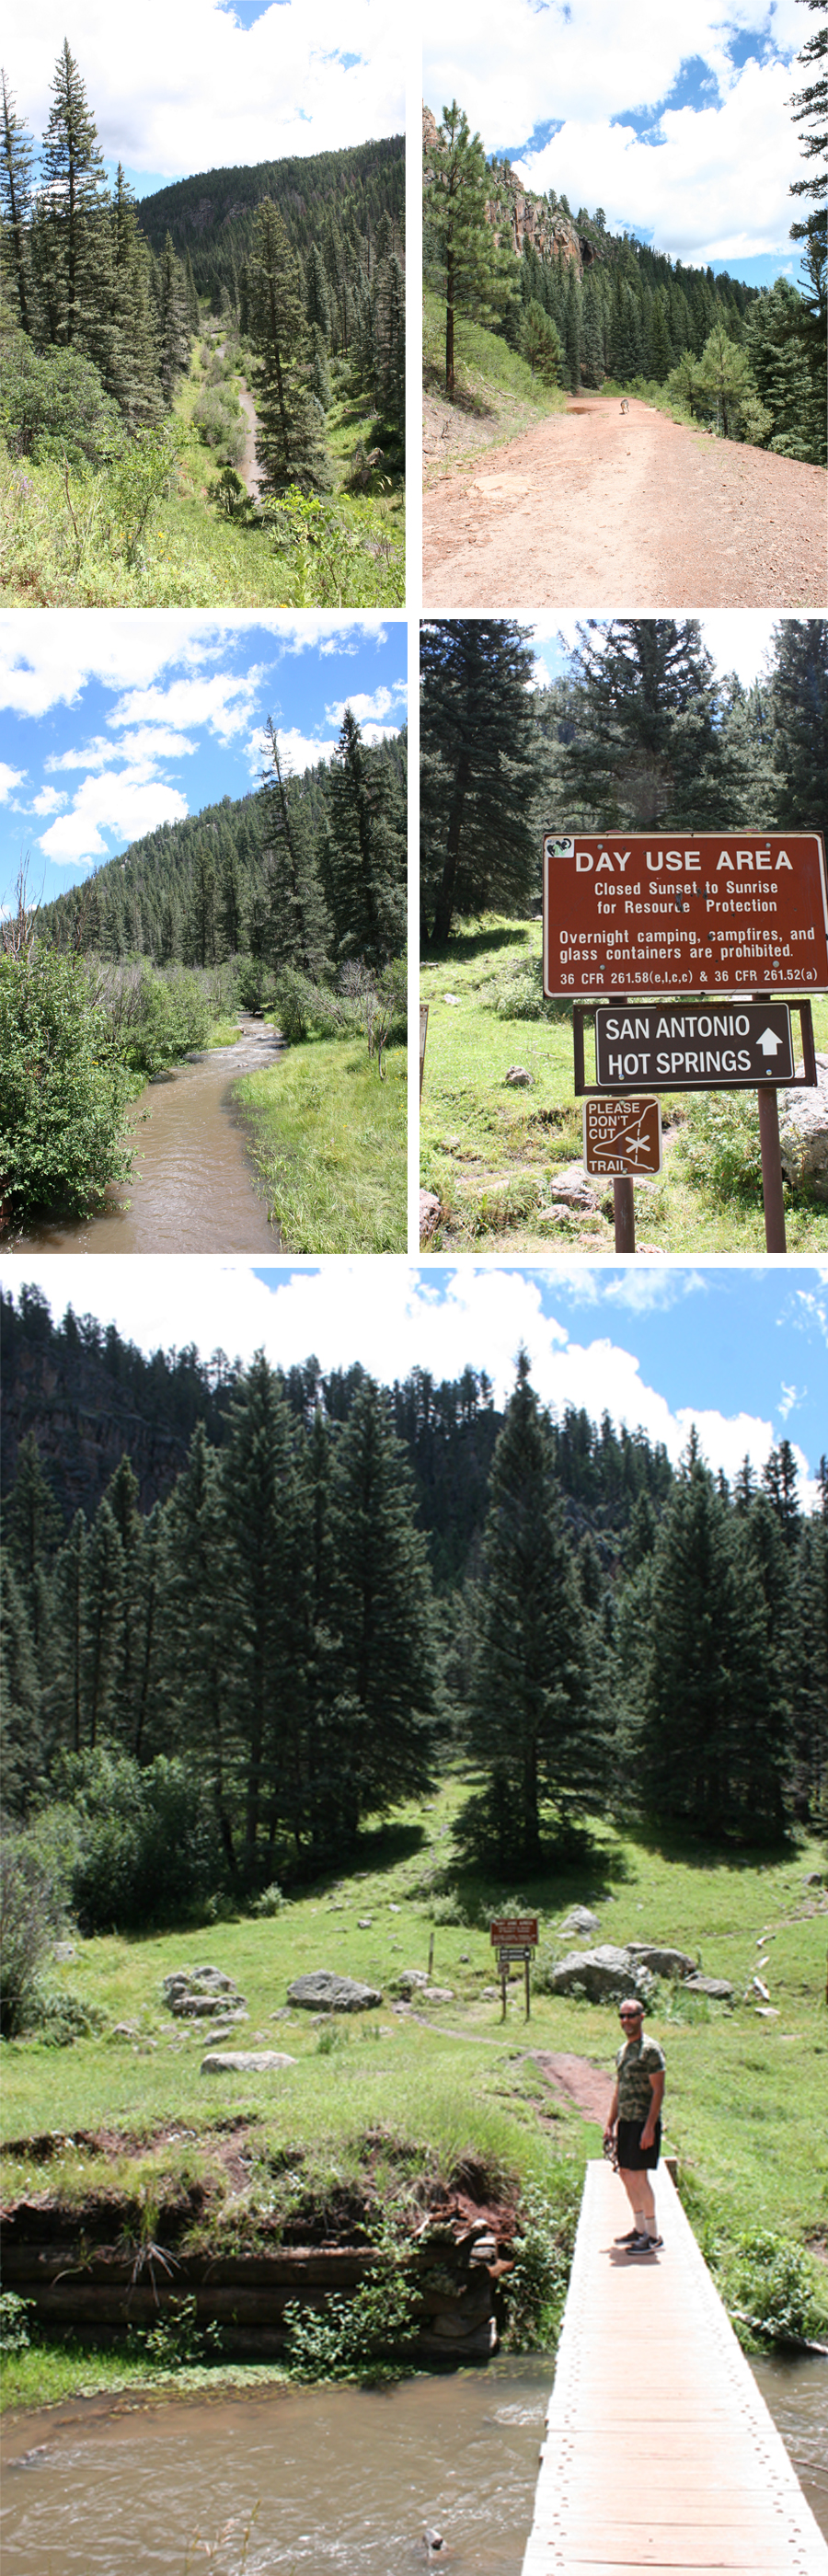 San Antonio Hot Springs Hike Jemez